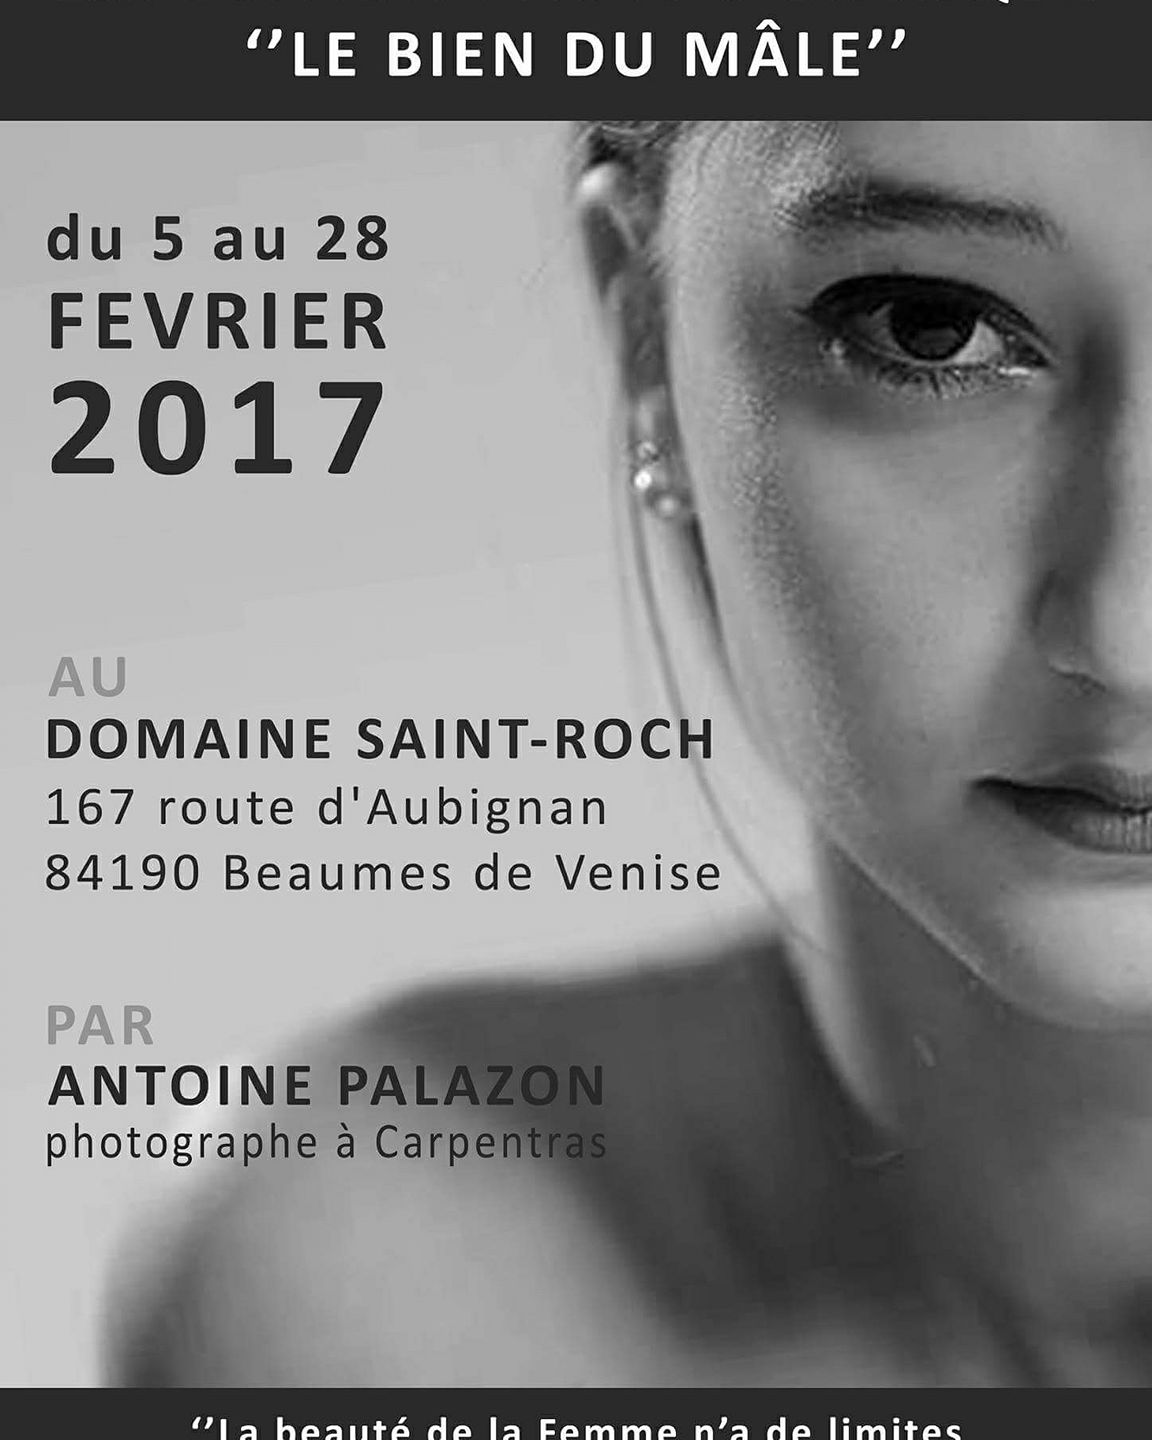 exposition_photo_le_bien_du_male_antoine_palazon